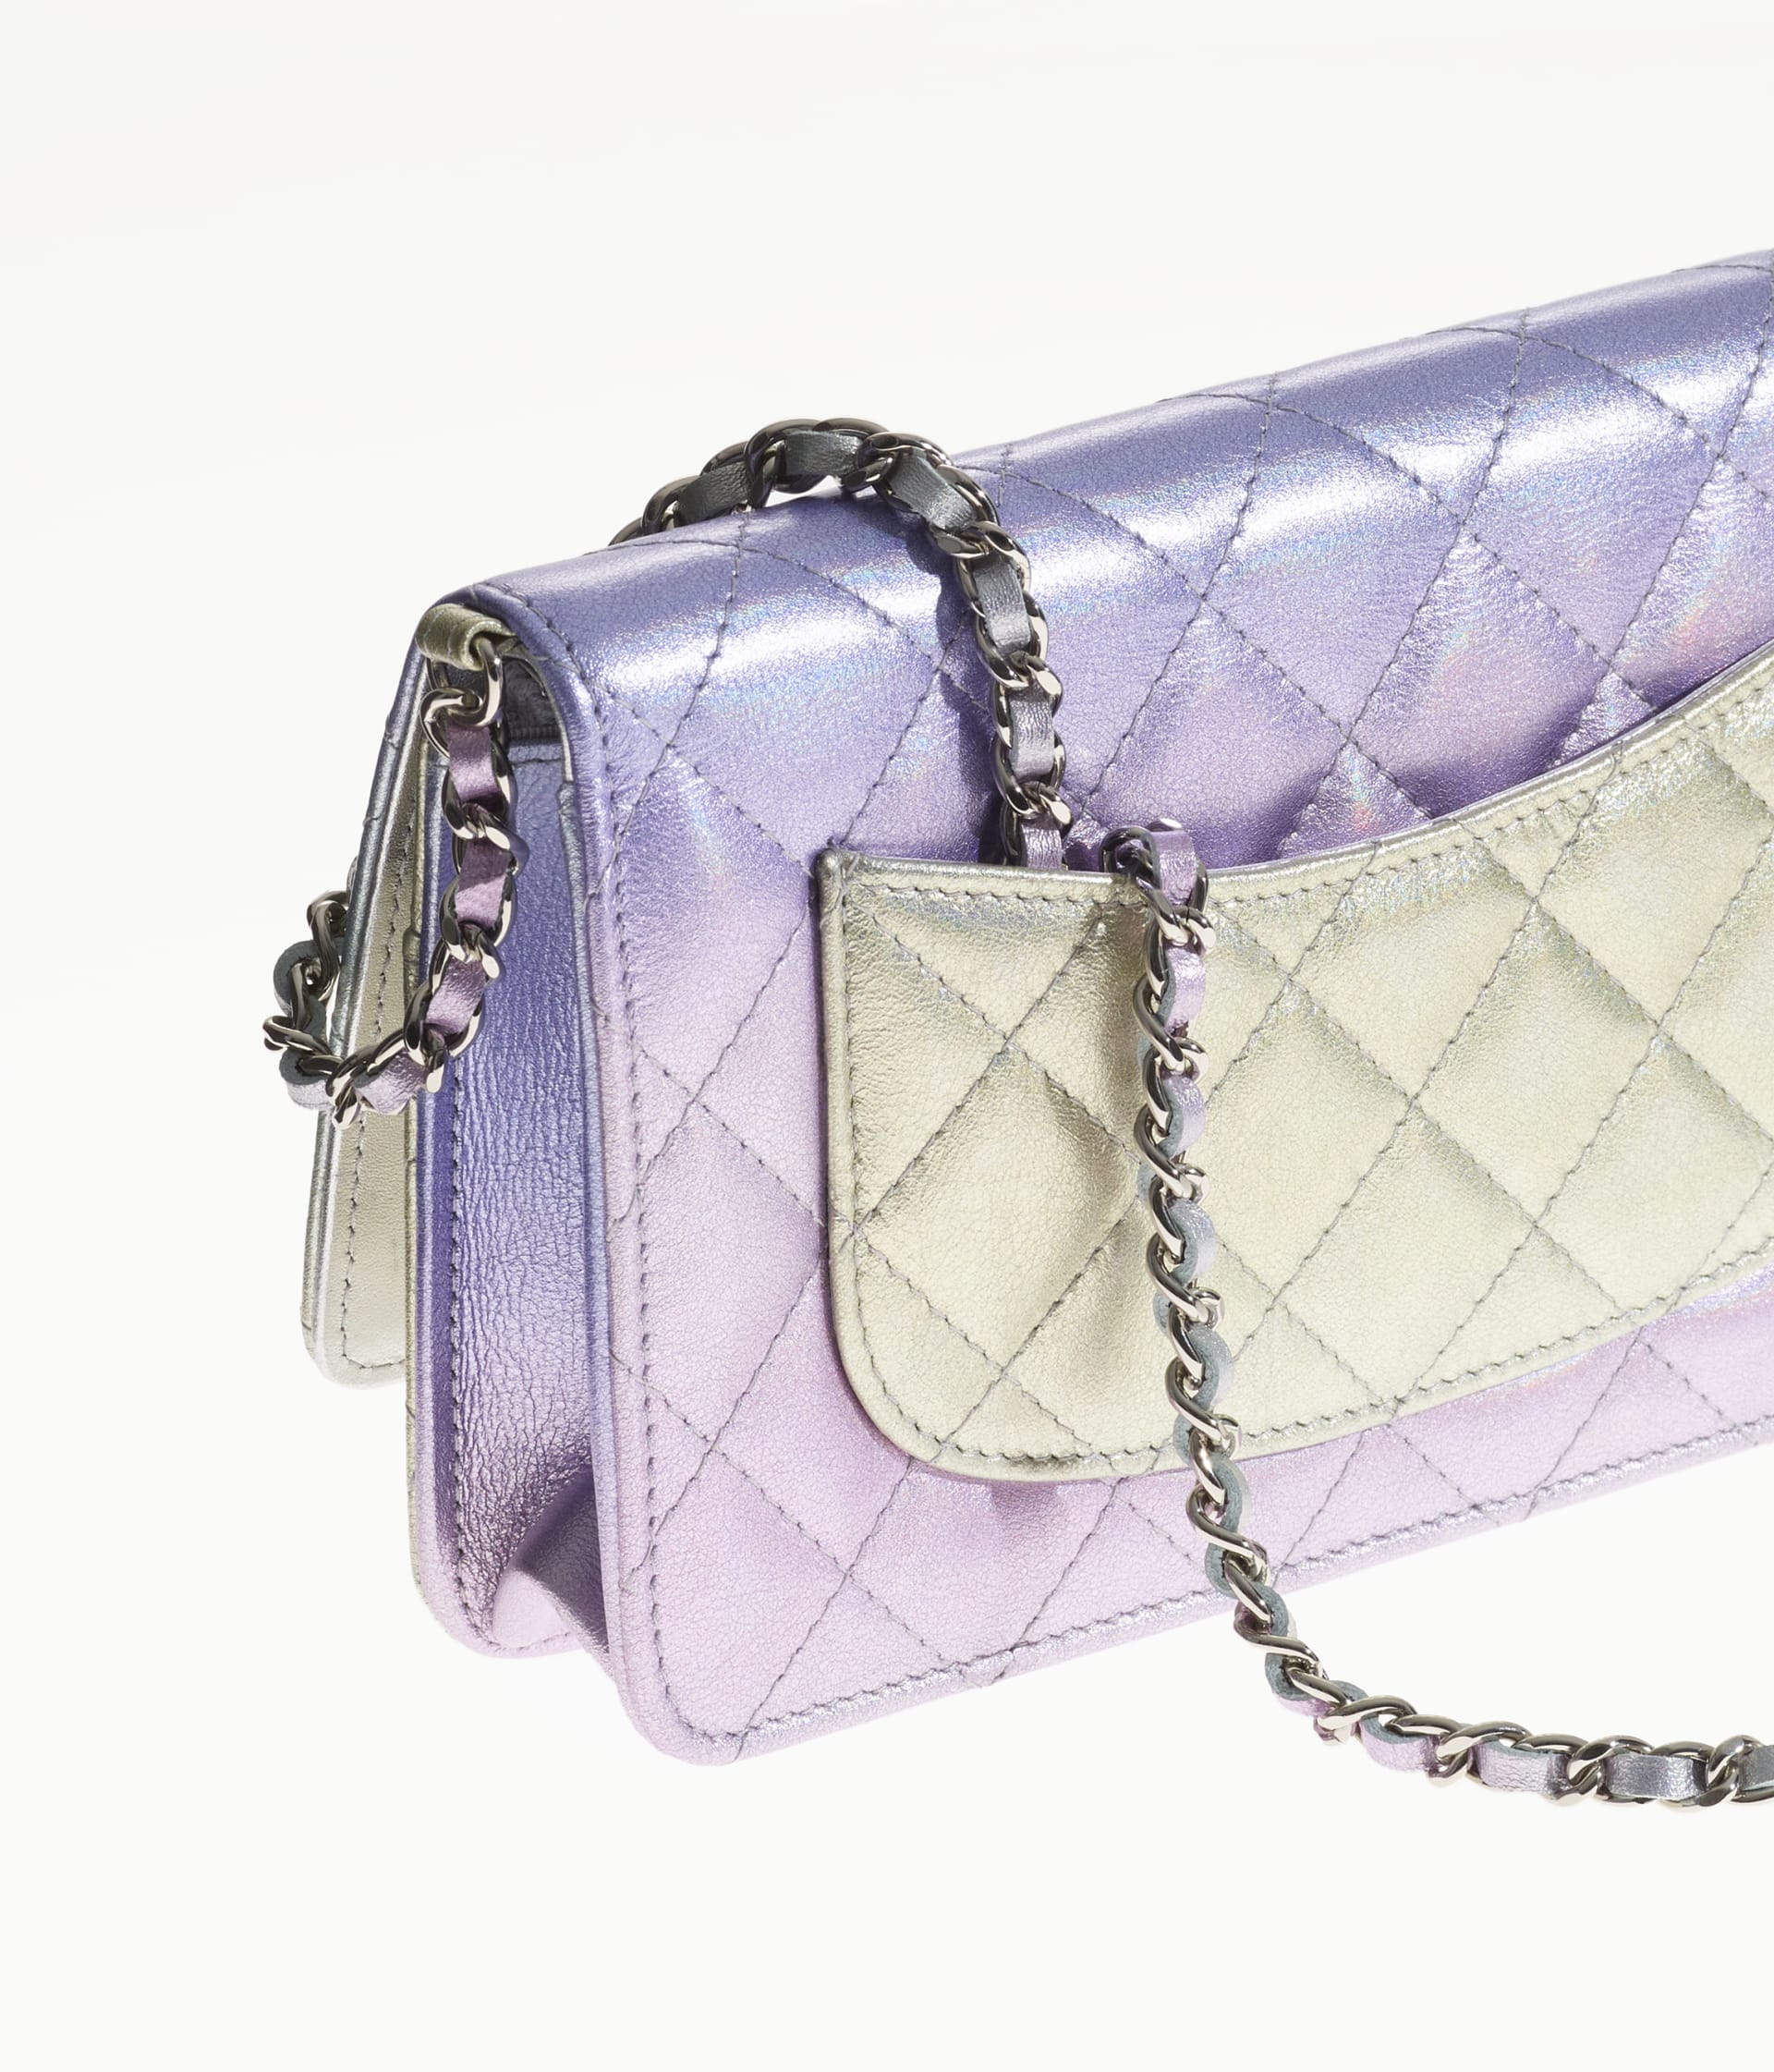 image 4 - Classic Wallet on Chain - Gradient Metallic Calfskin & Gradient Lacquered Metal - Silver, Blue, Yellow and Purple